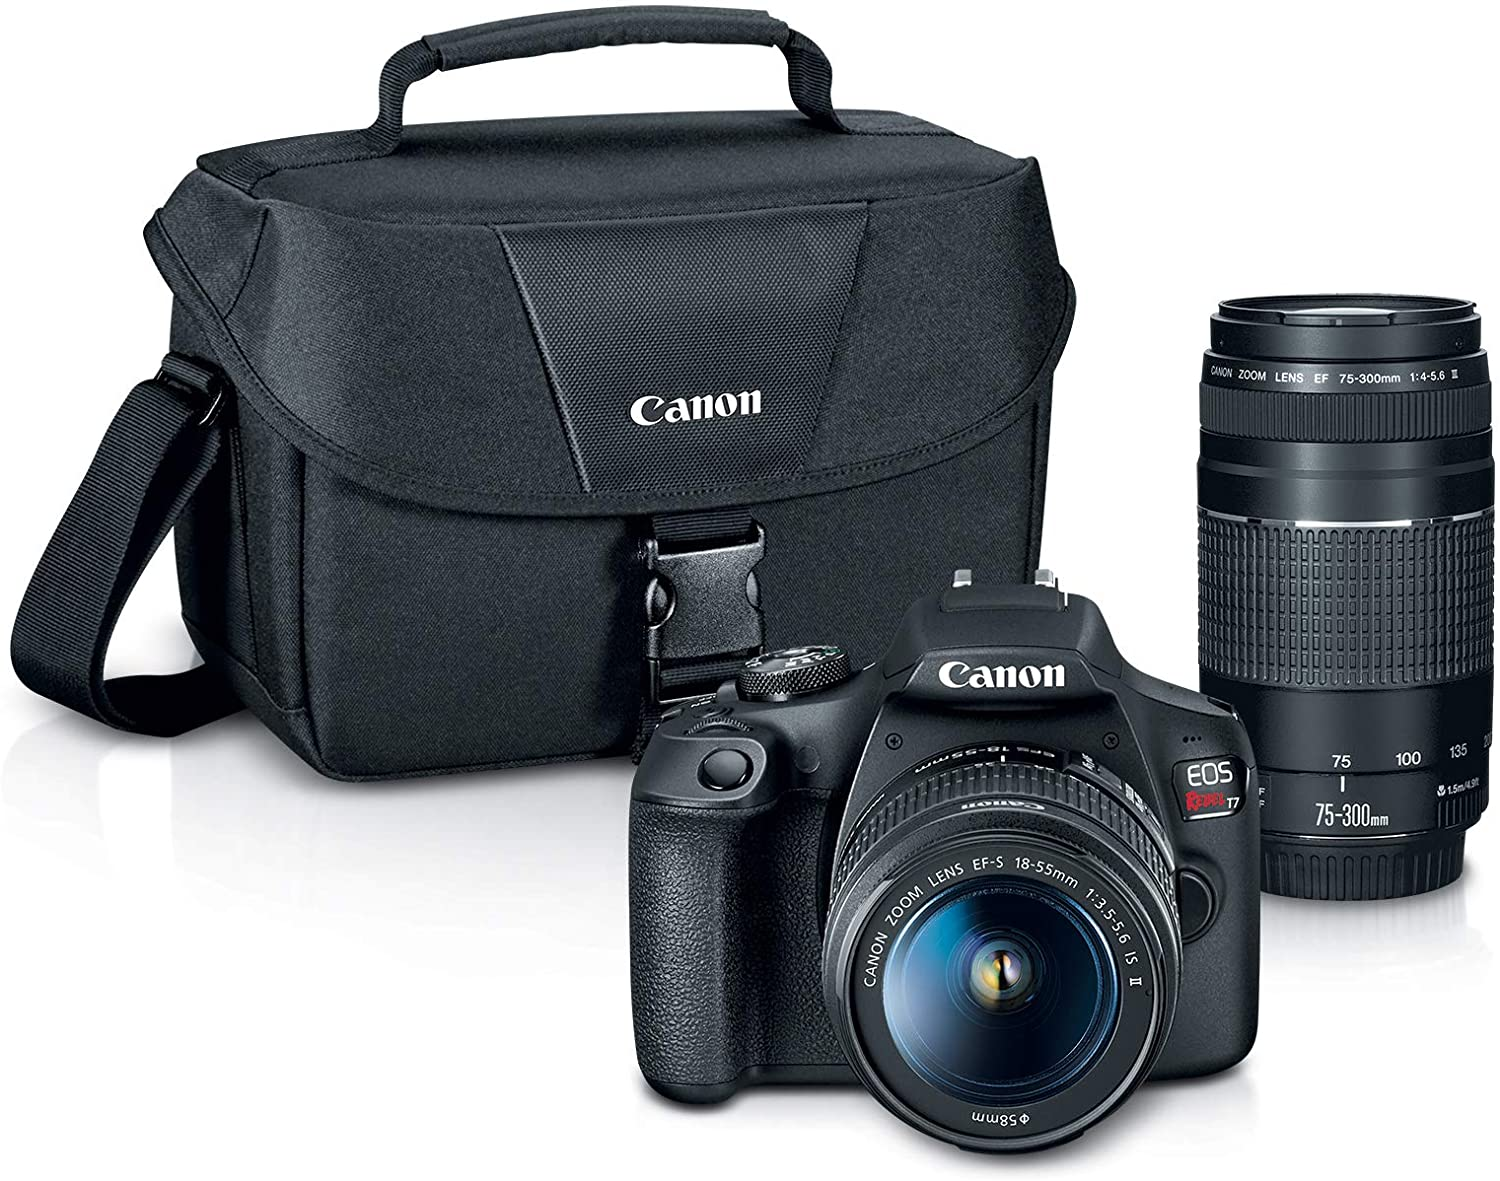 Canon DSLRs and EF lenses